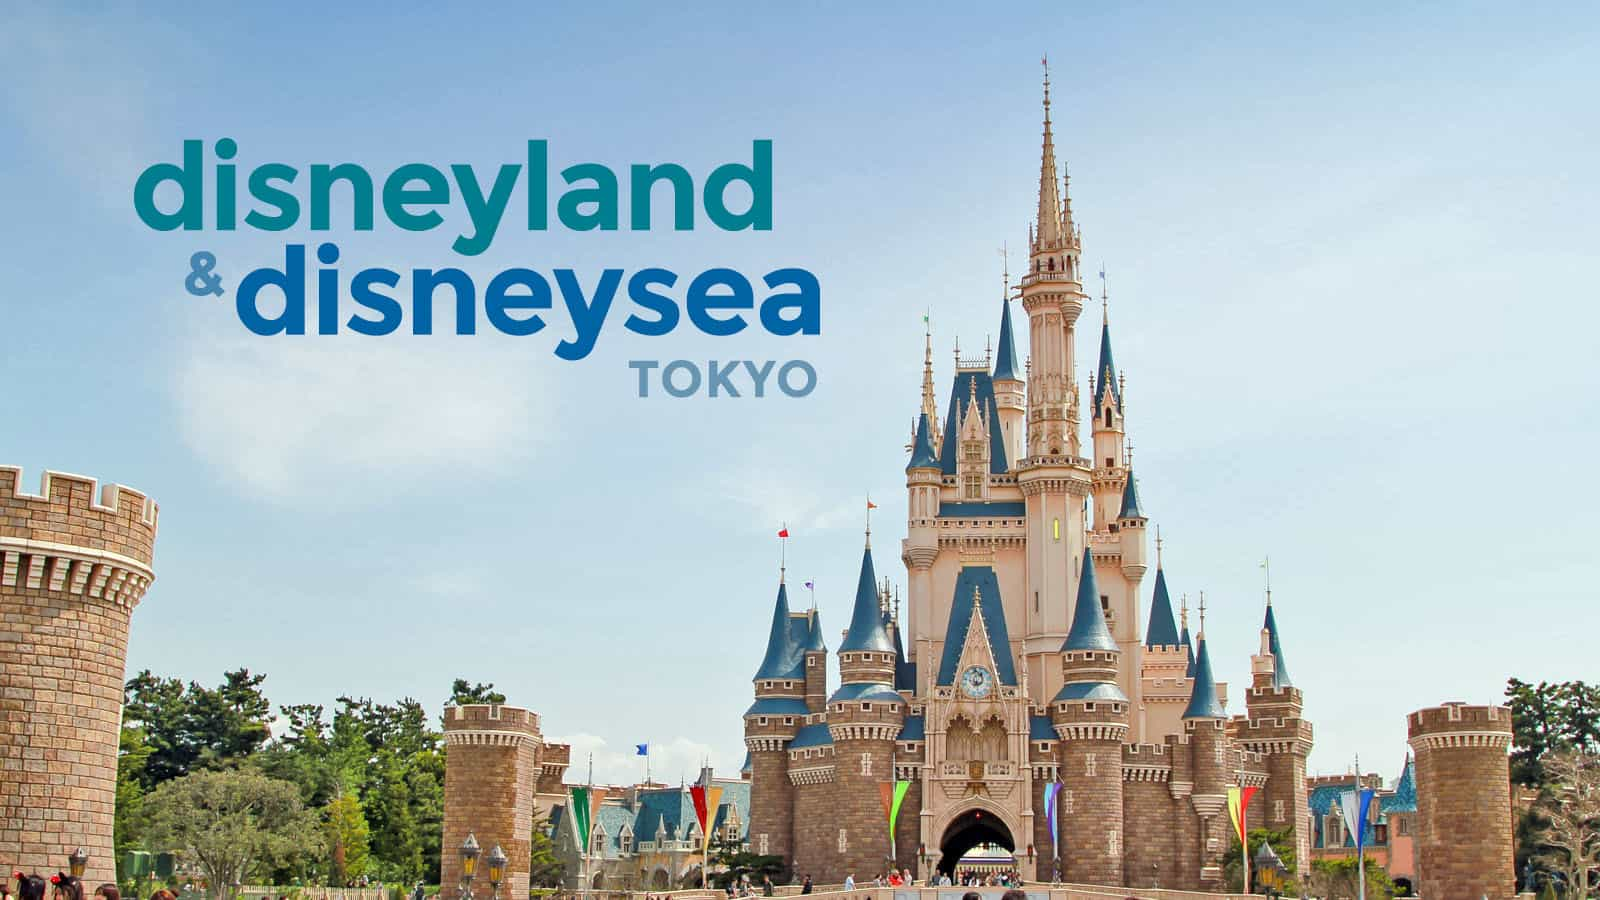 Tokyo Disneyland Disneysea Guide For First Timers The